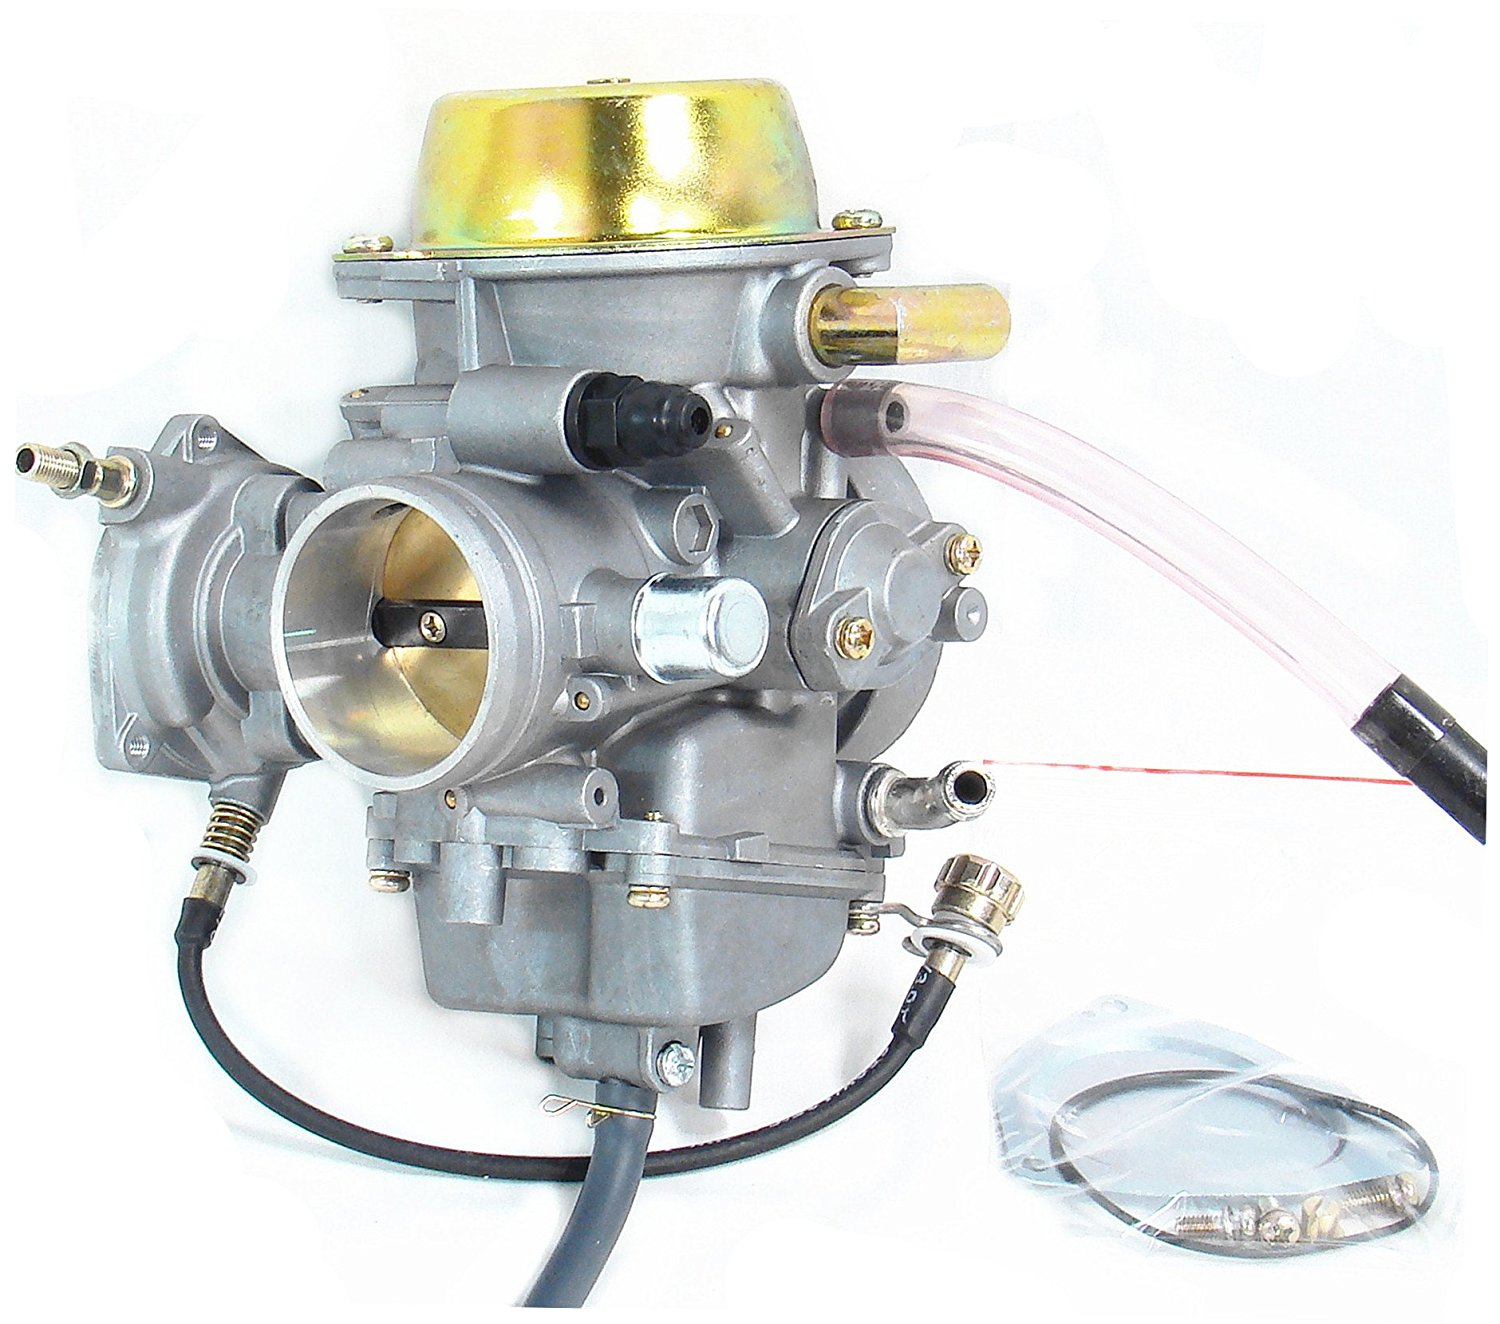 hight resolution of get quotations carburetor polaris predator outlaw 500 bombardier quest 500 650 ds650 carb